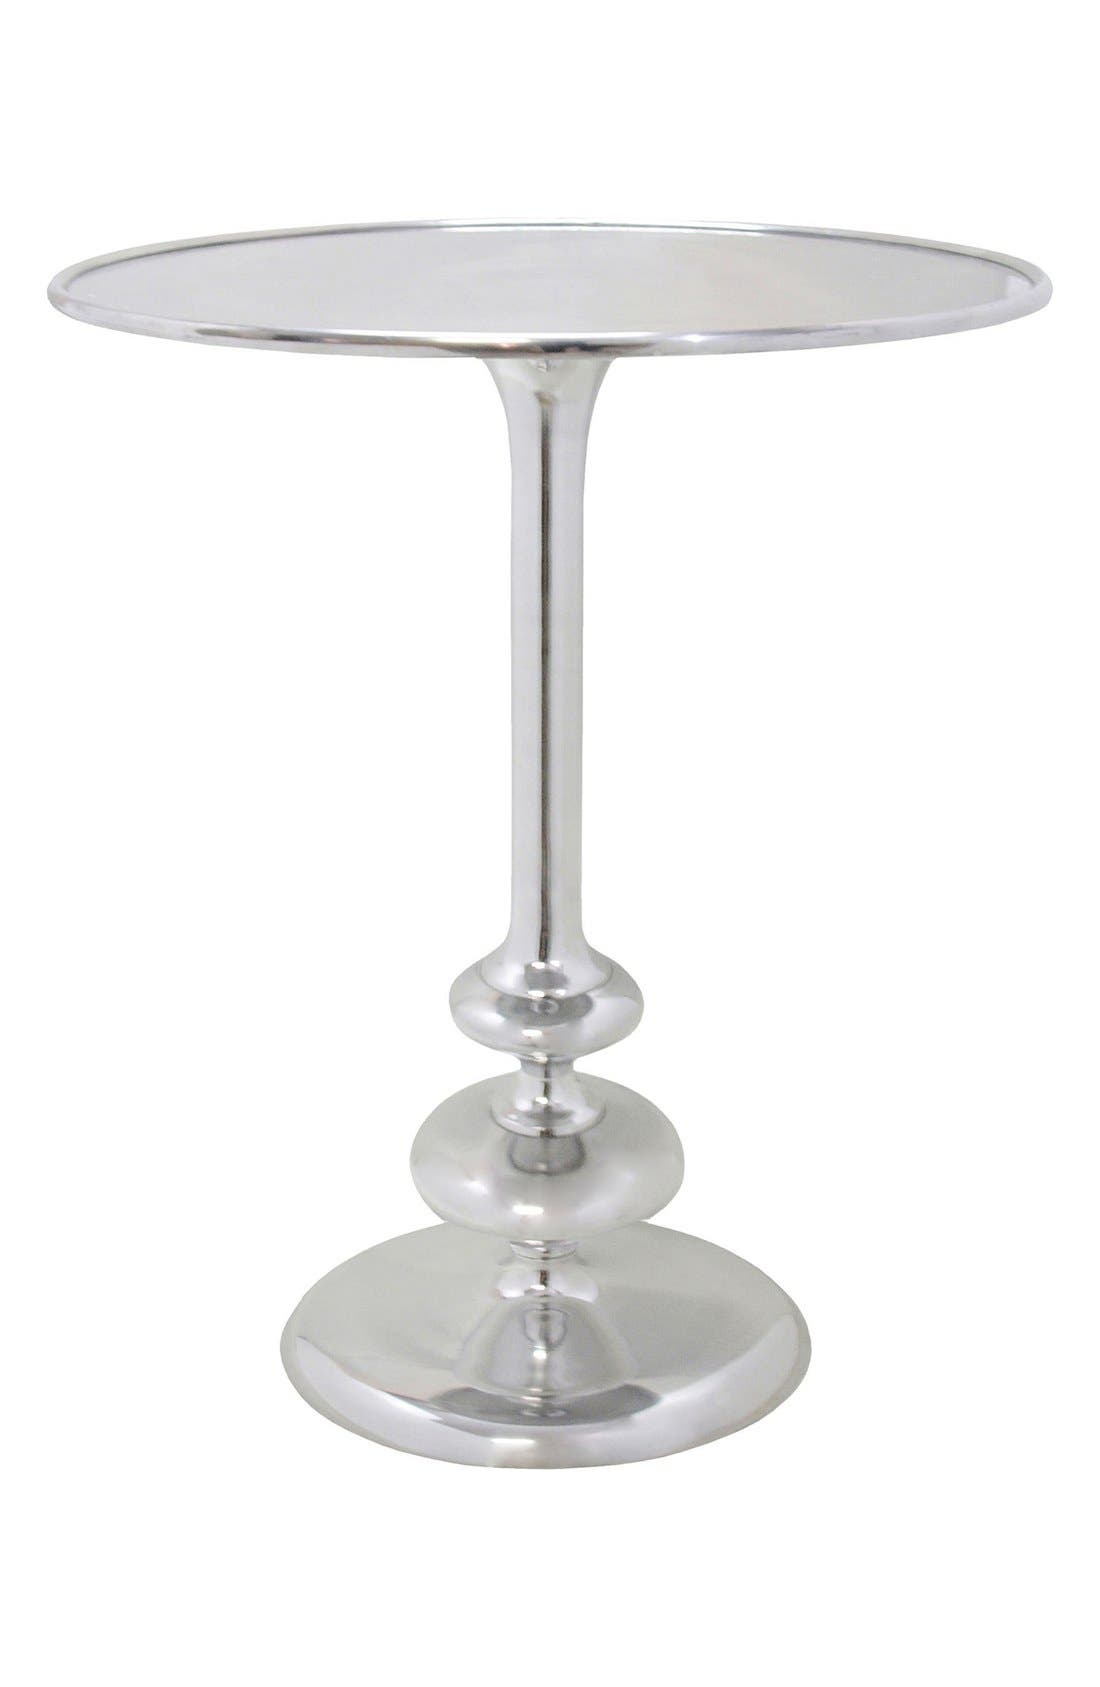 Alternate Image 1 Selected - Renwil 'Carraway' Accent Table